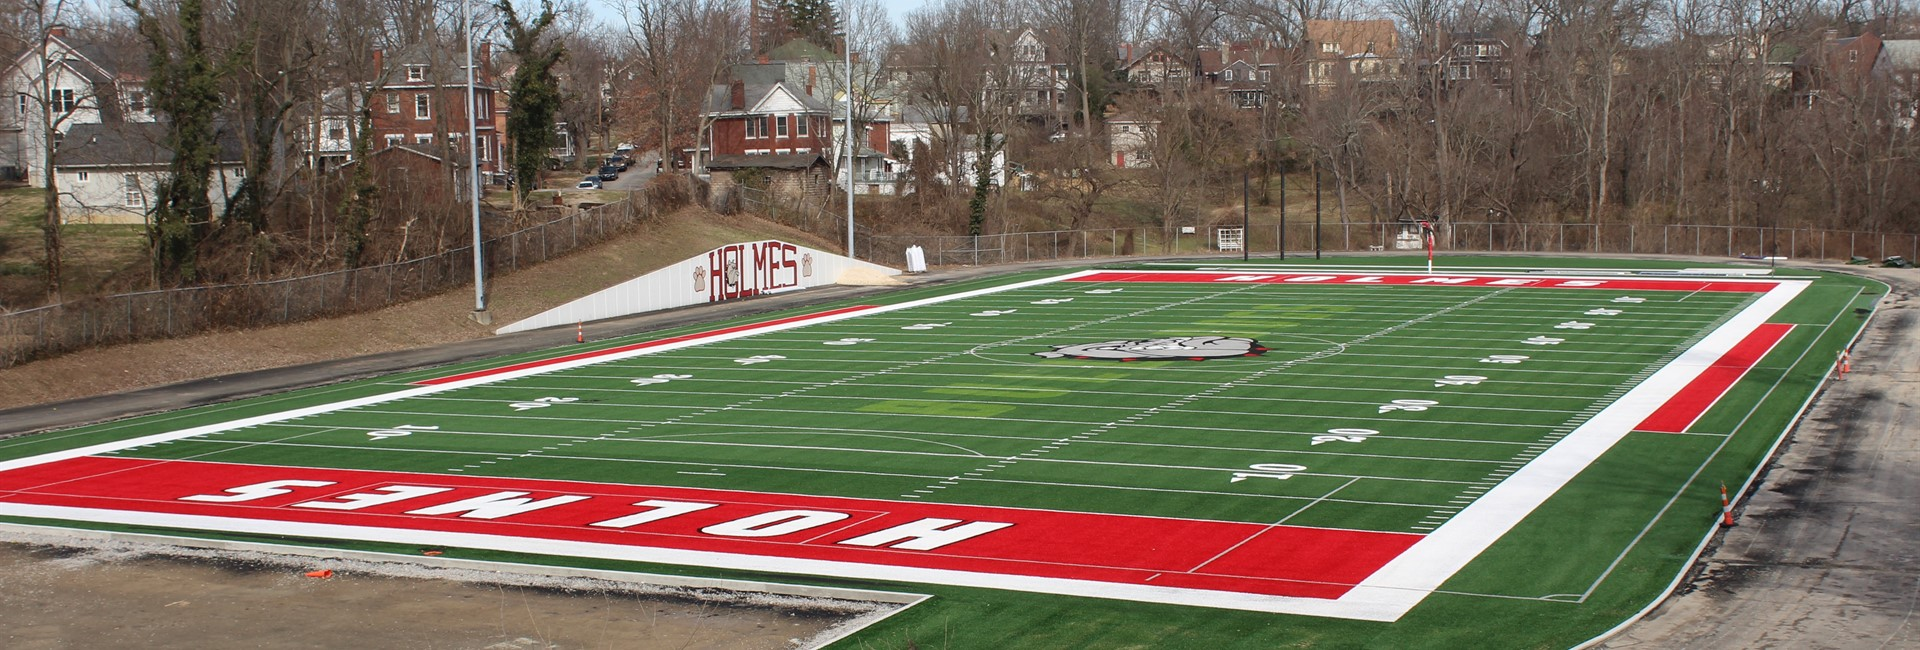 New turf field at Holmes High School